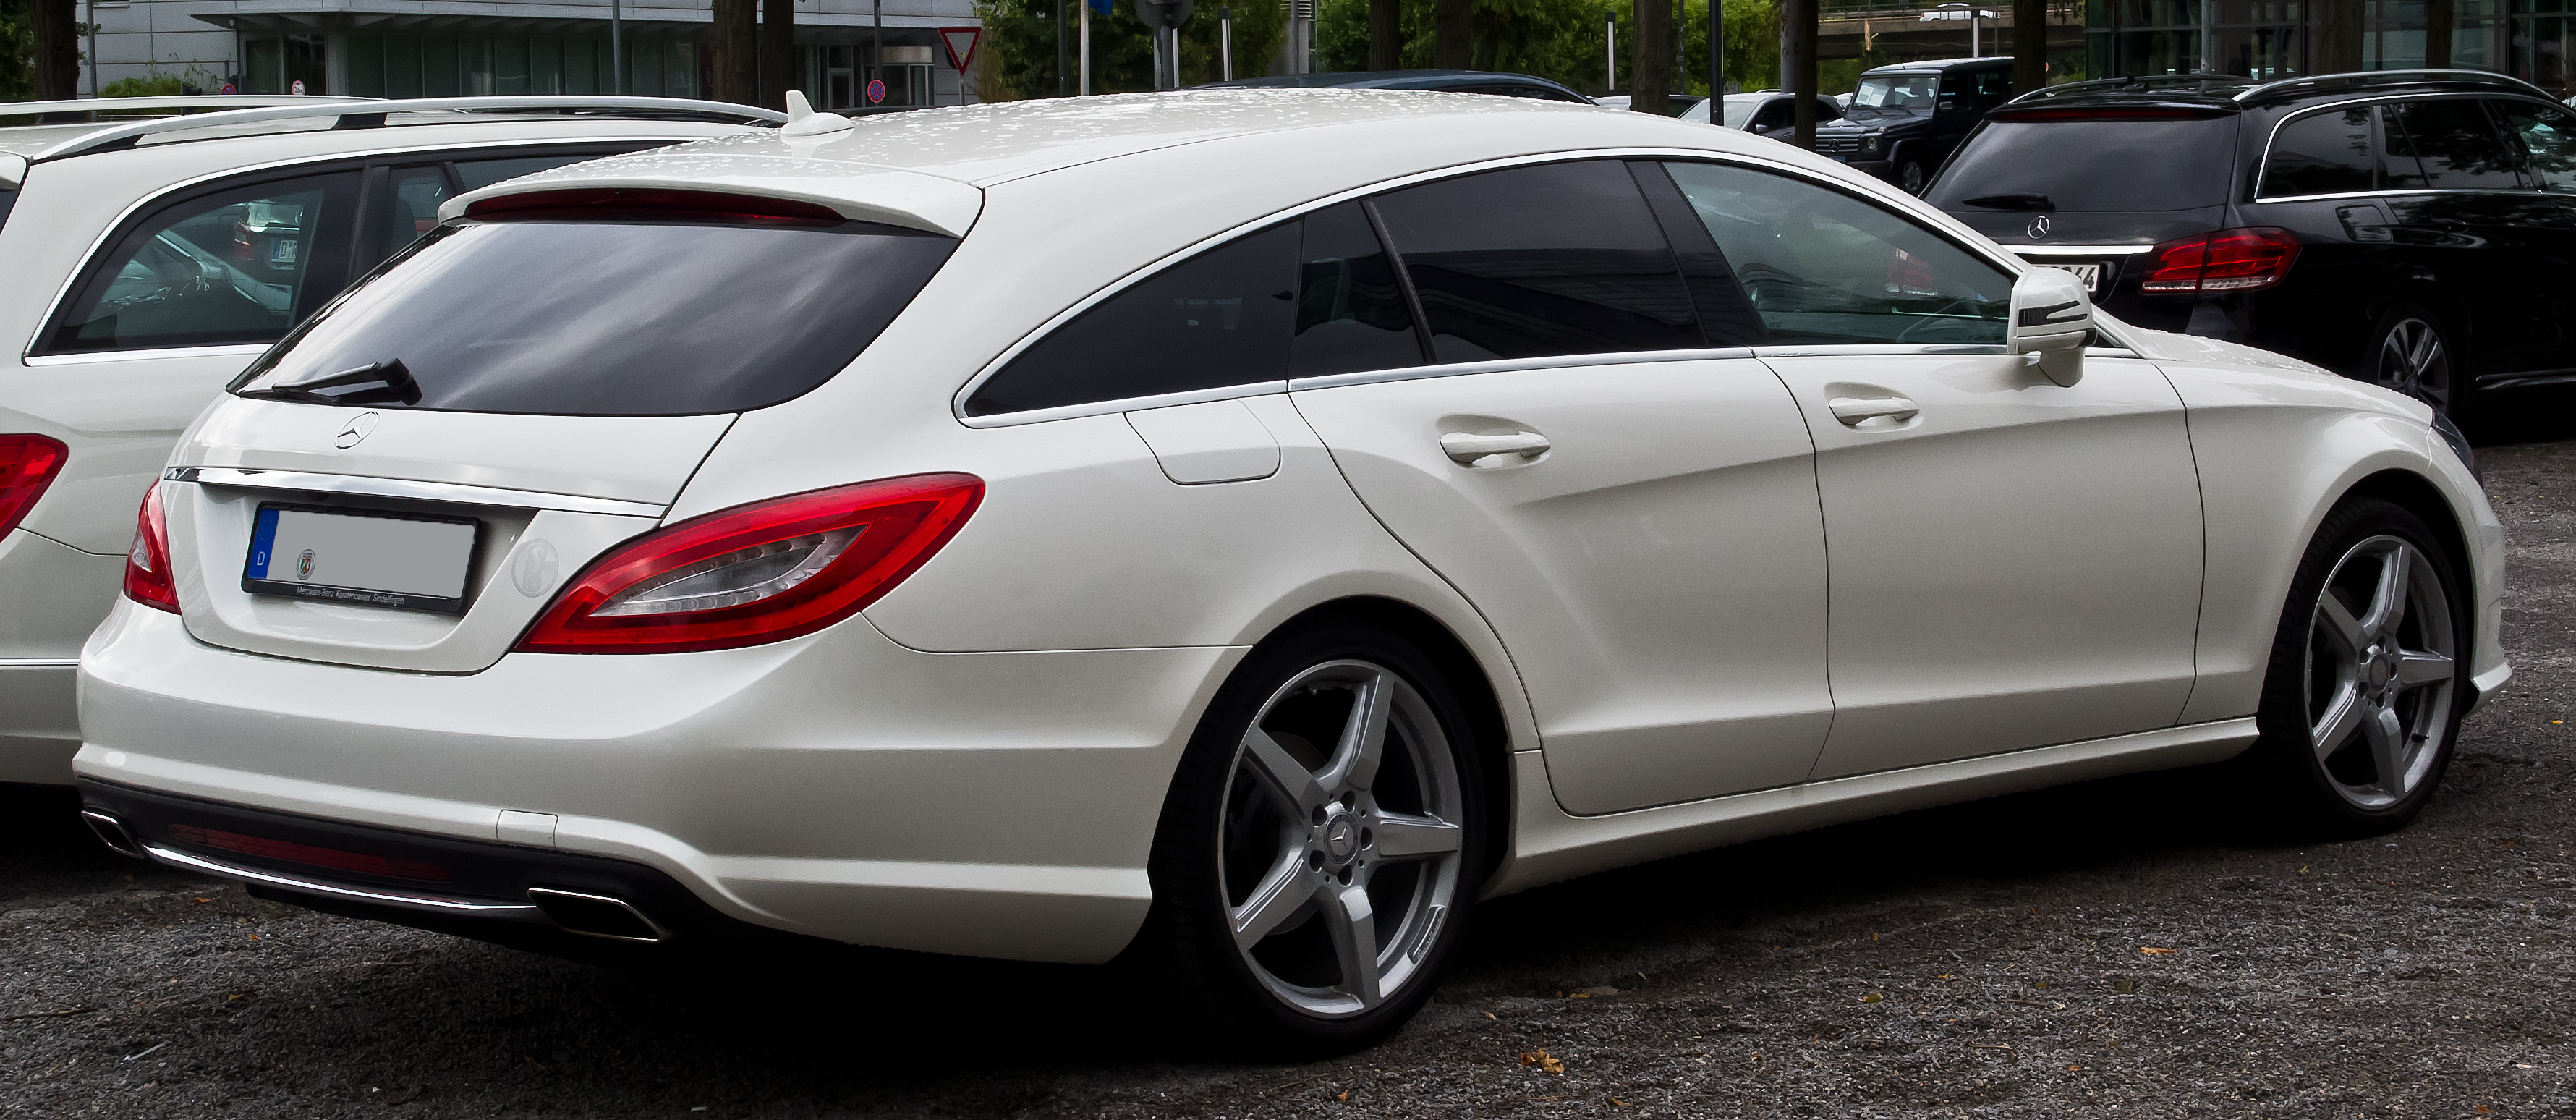 file mercedes benz cls 350 cdi shooting brake sport paket amg x 218 heckansicht 5 juli. Black Bedroom Furniture Sets. Home Design Ideas